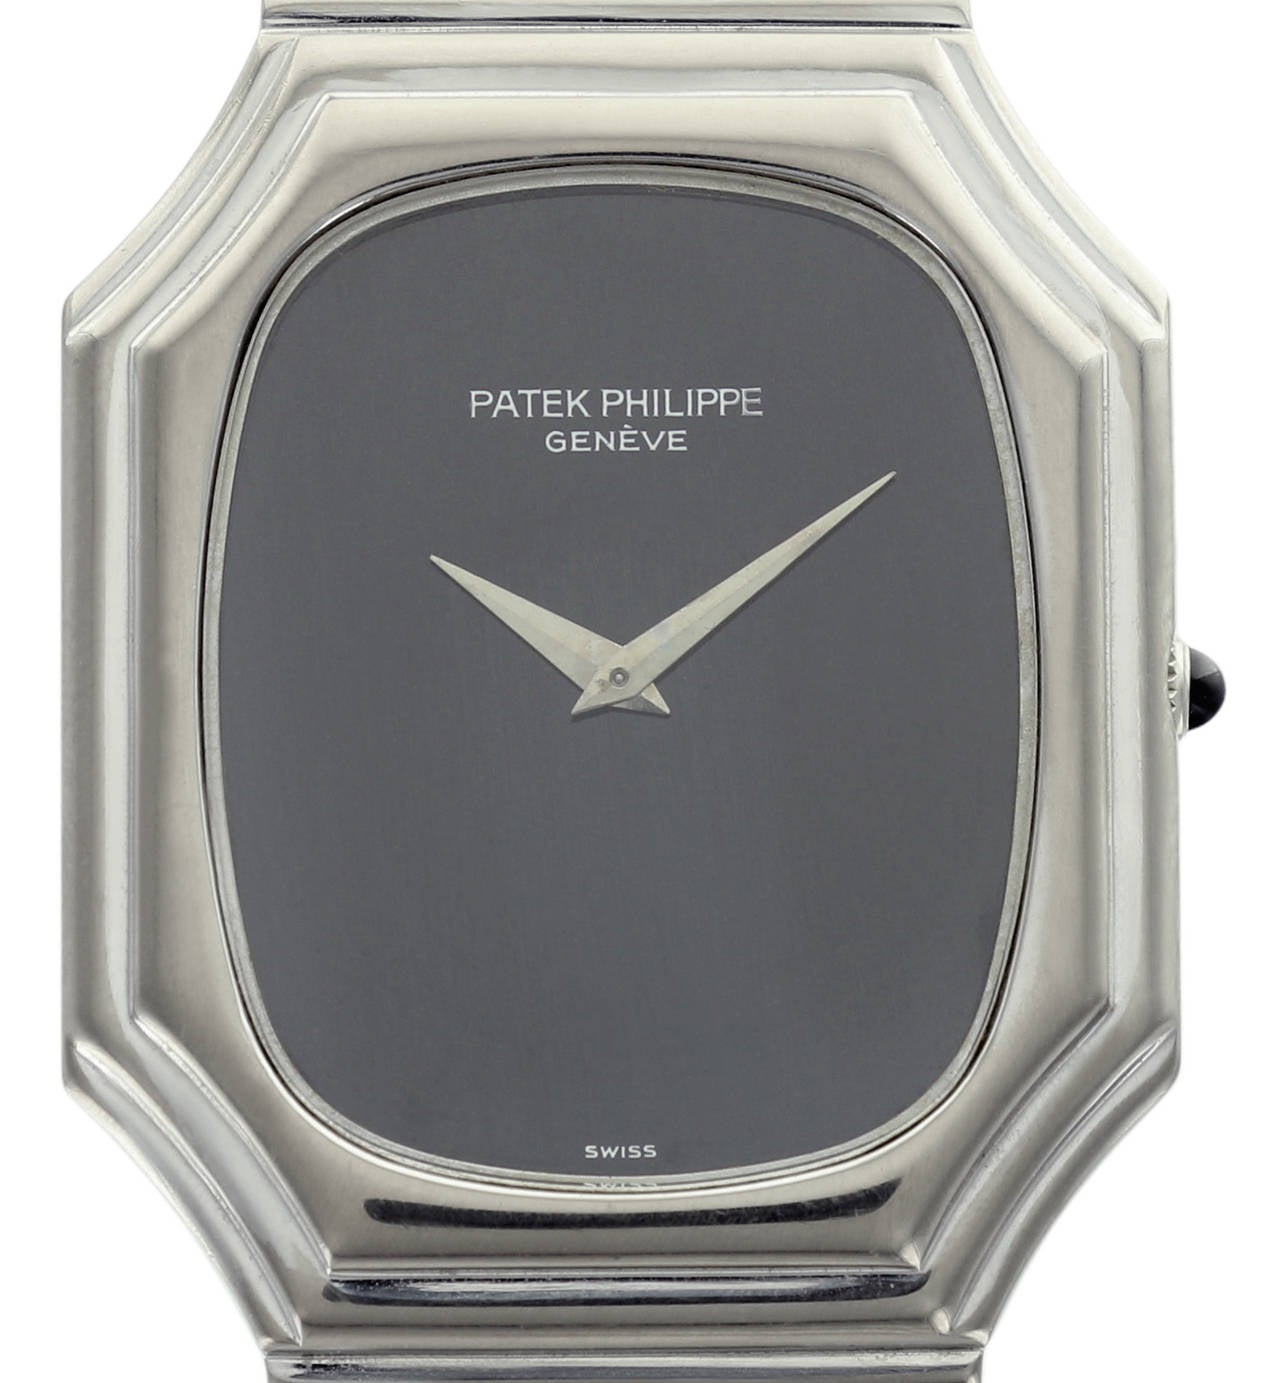 This rare and unusual Patek Philippe reference 3729 is a beautiful retro design with the original white gold Patek Philippe band and simple black dial.